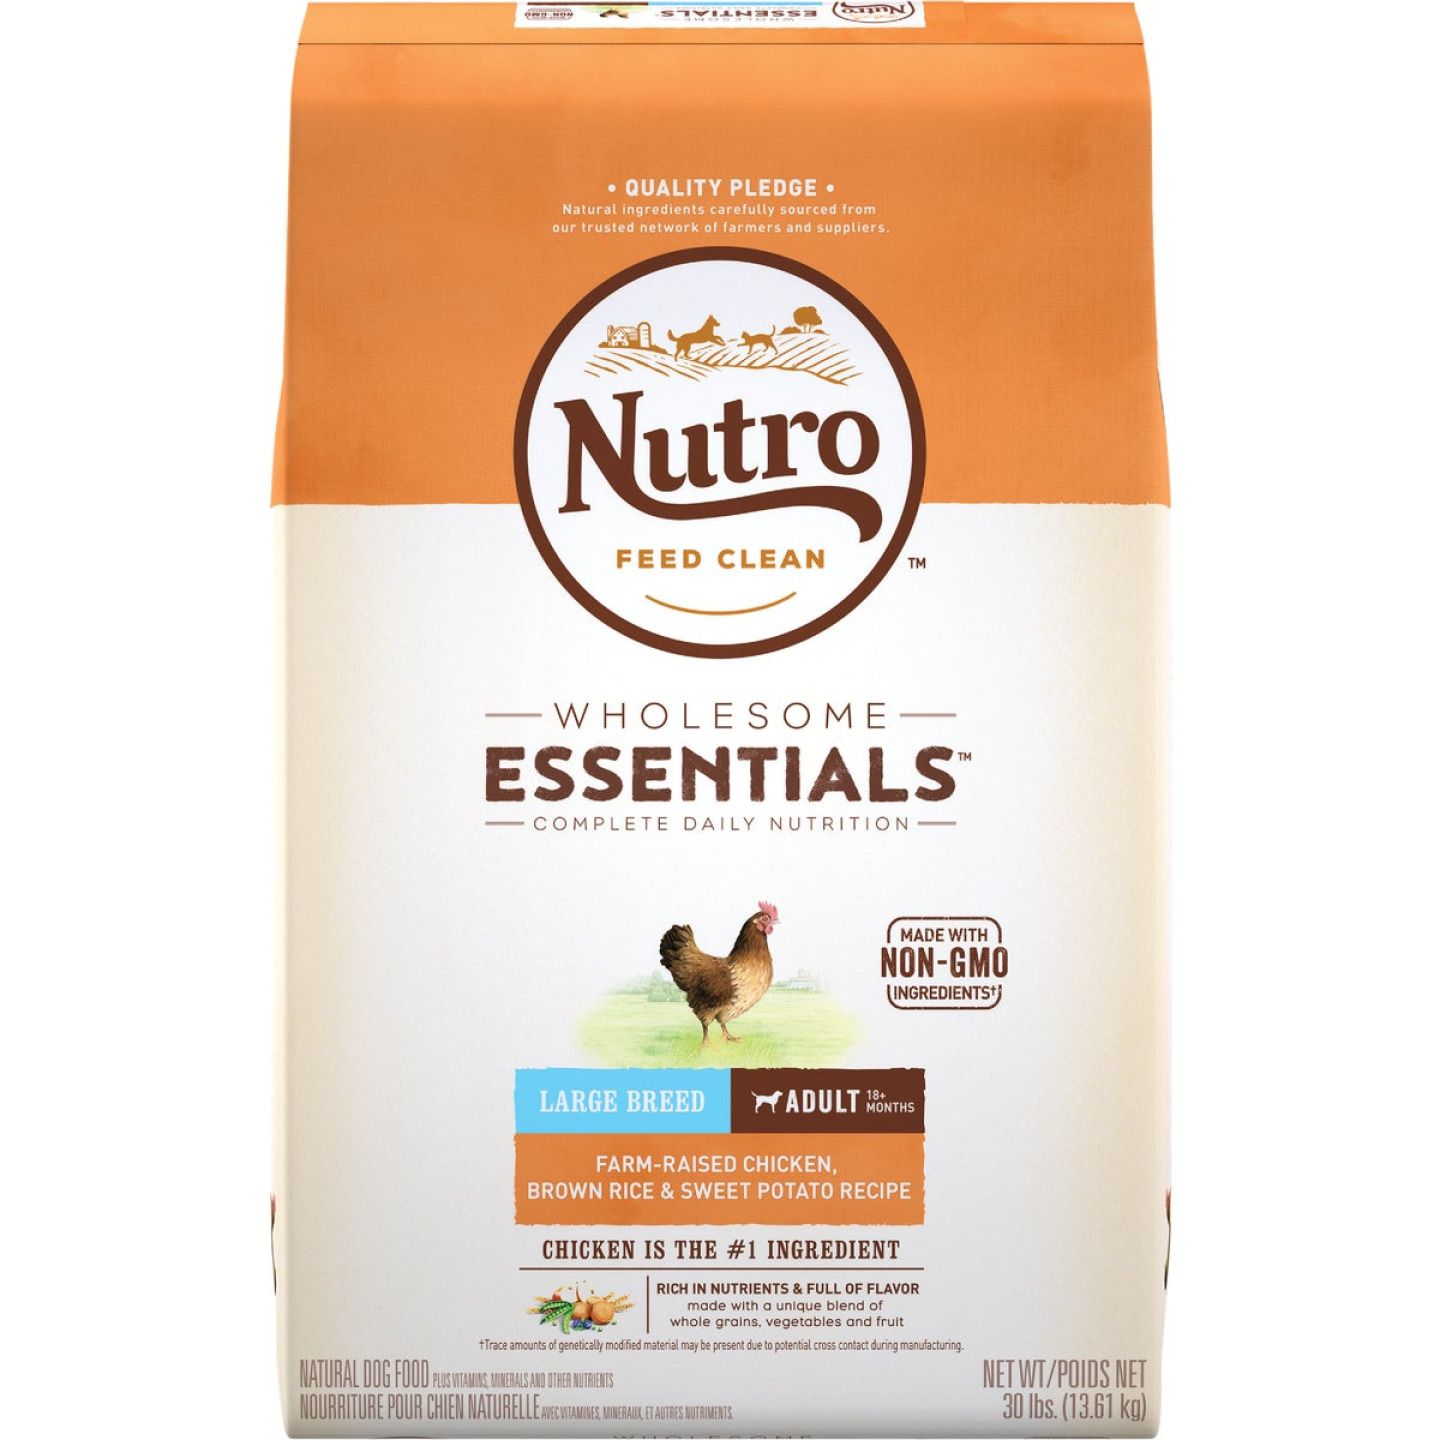 Nutro Wholesome Essentials 30 Lb. Chicken, Brown Rice, & Sweet Potato Large Breed Adult Dry Dog Food Image 1